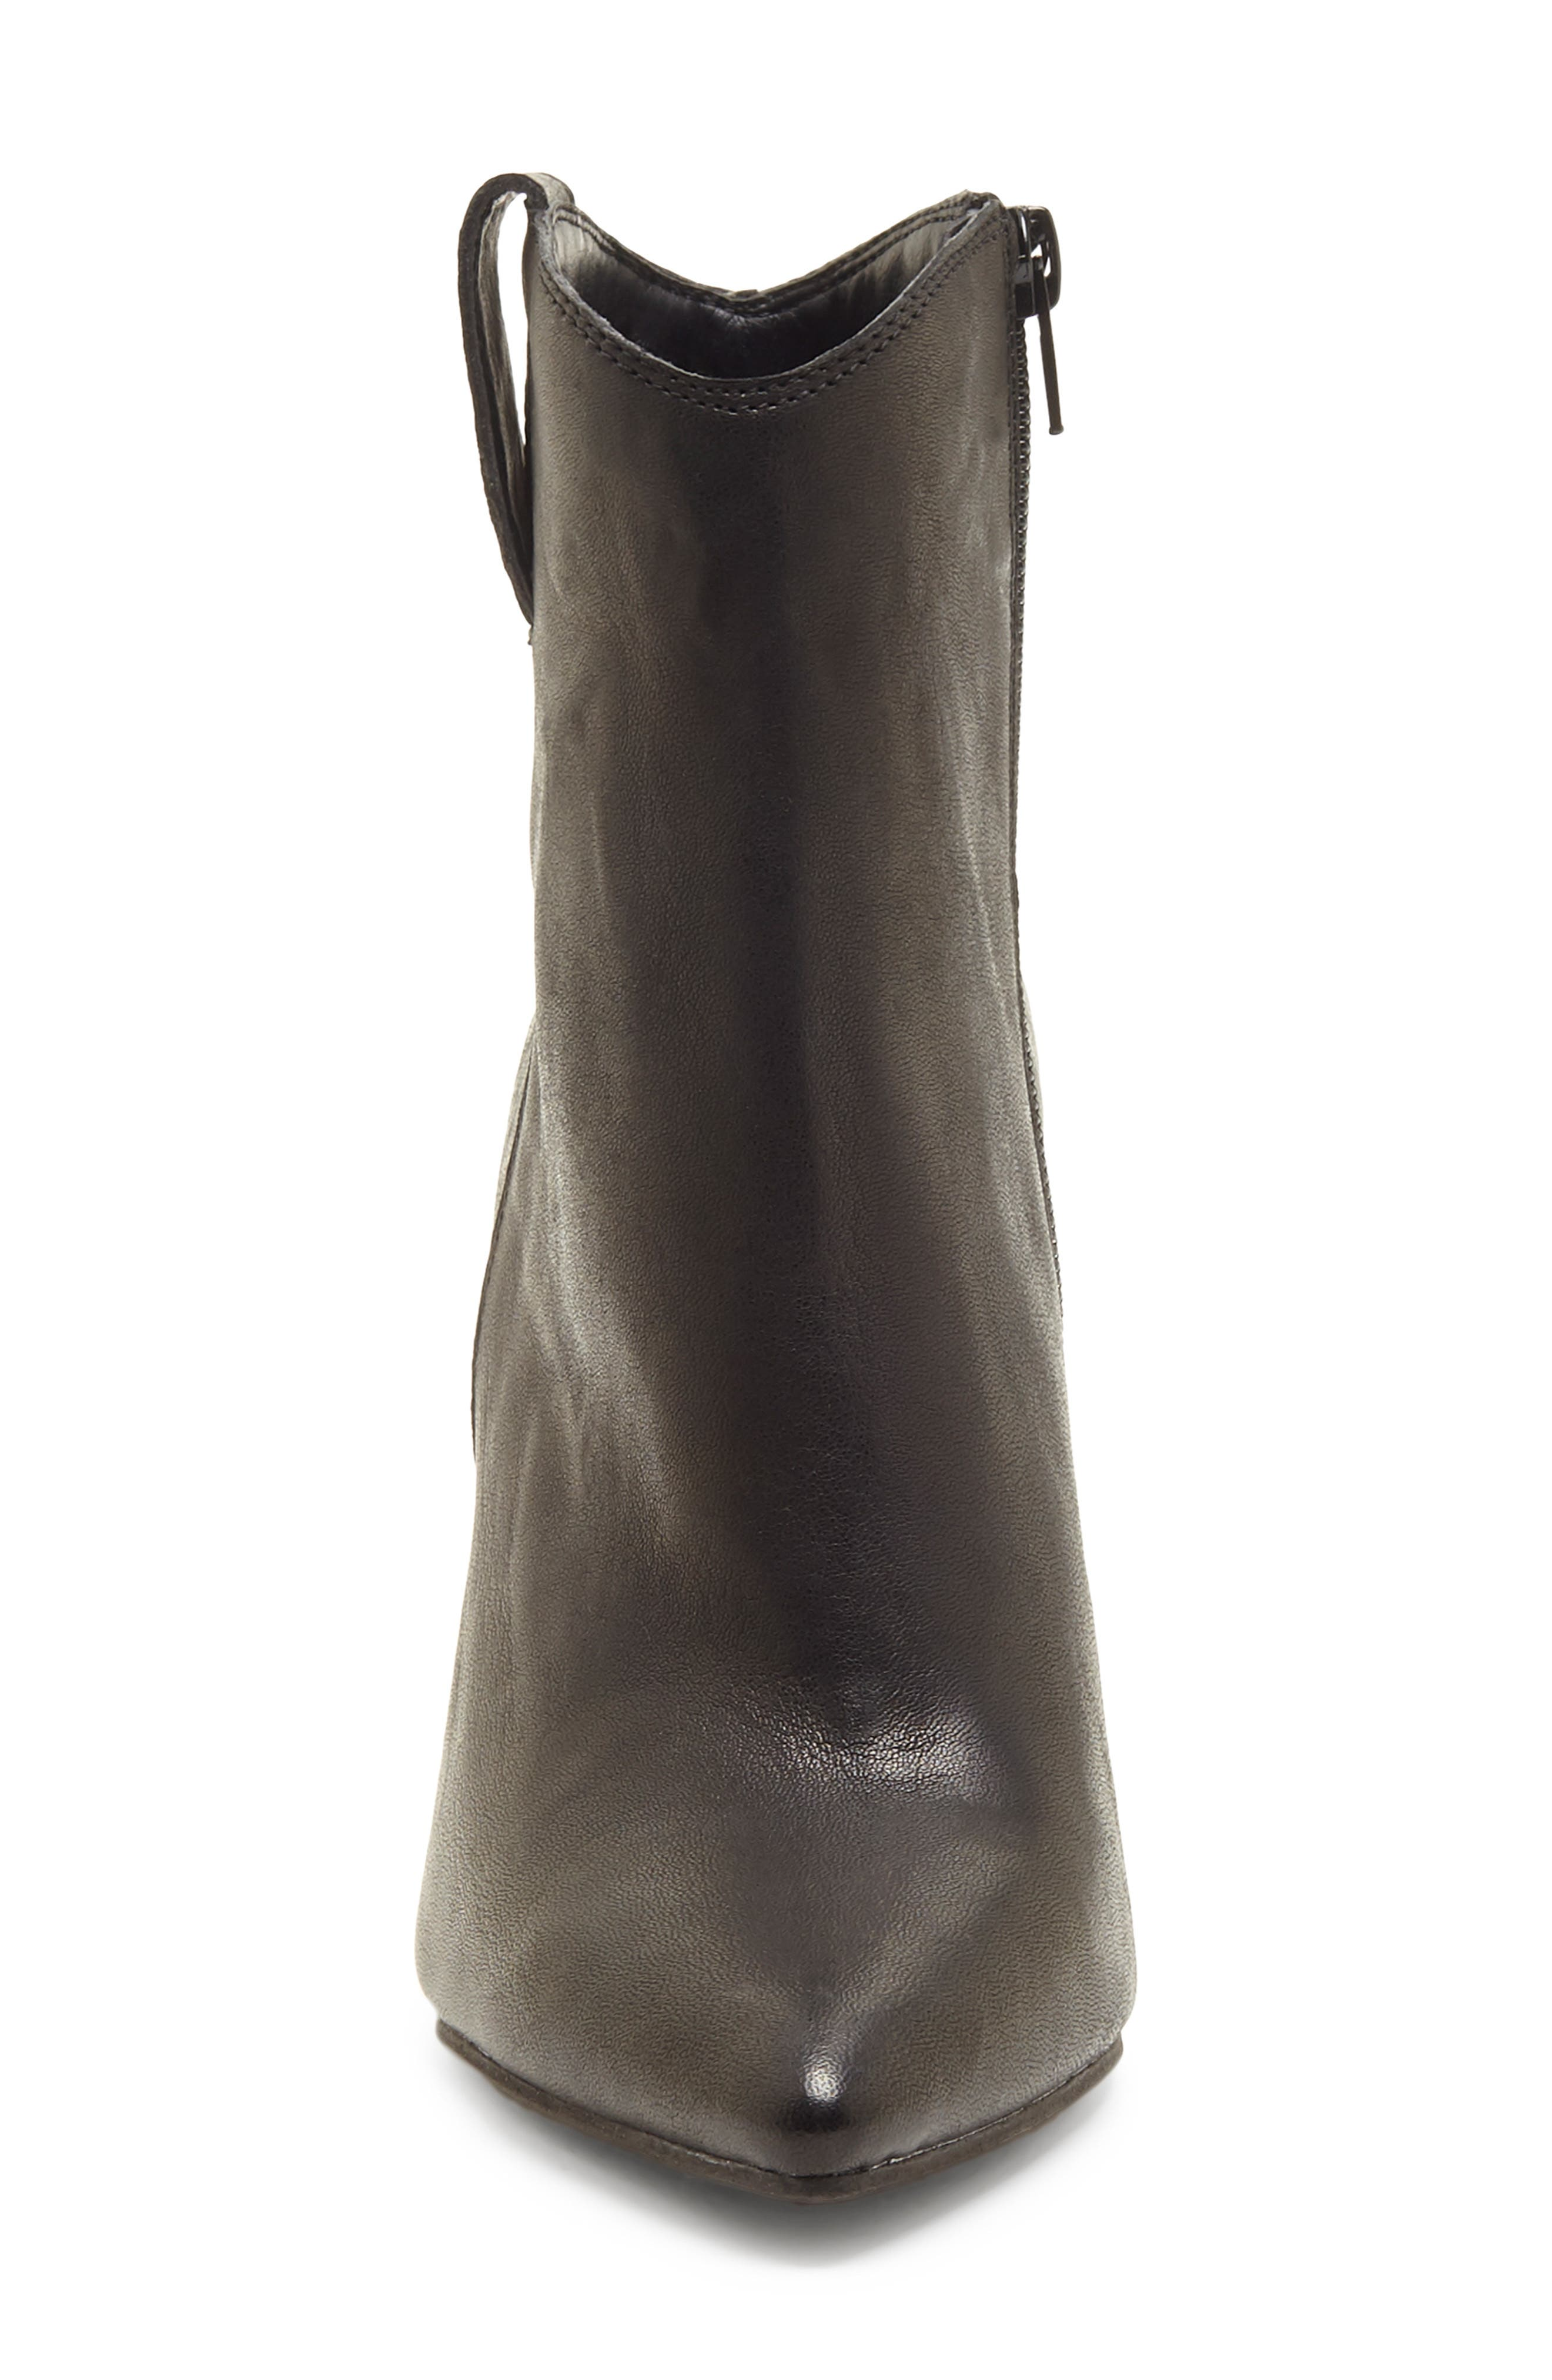 LUCKY BRAND,                             Torince Bootie,                             Alternate thumbnail 4, color,                             200